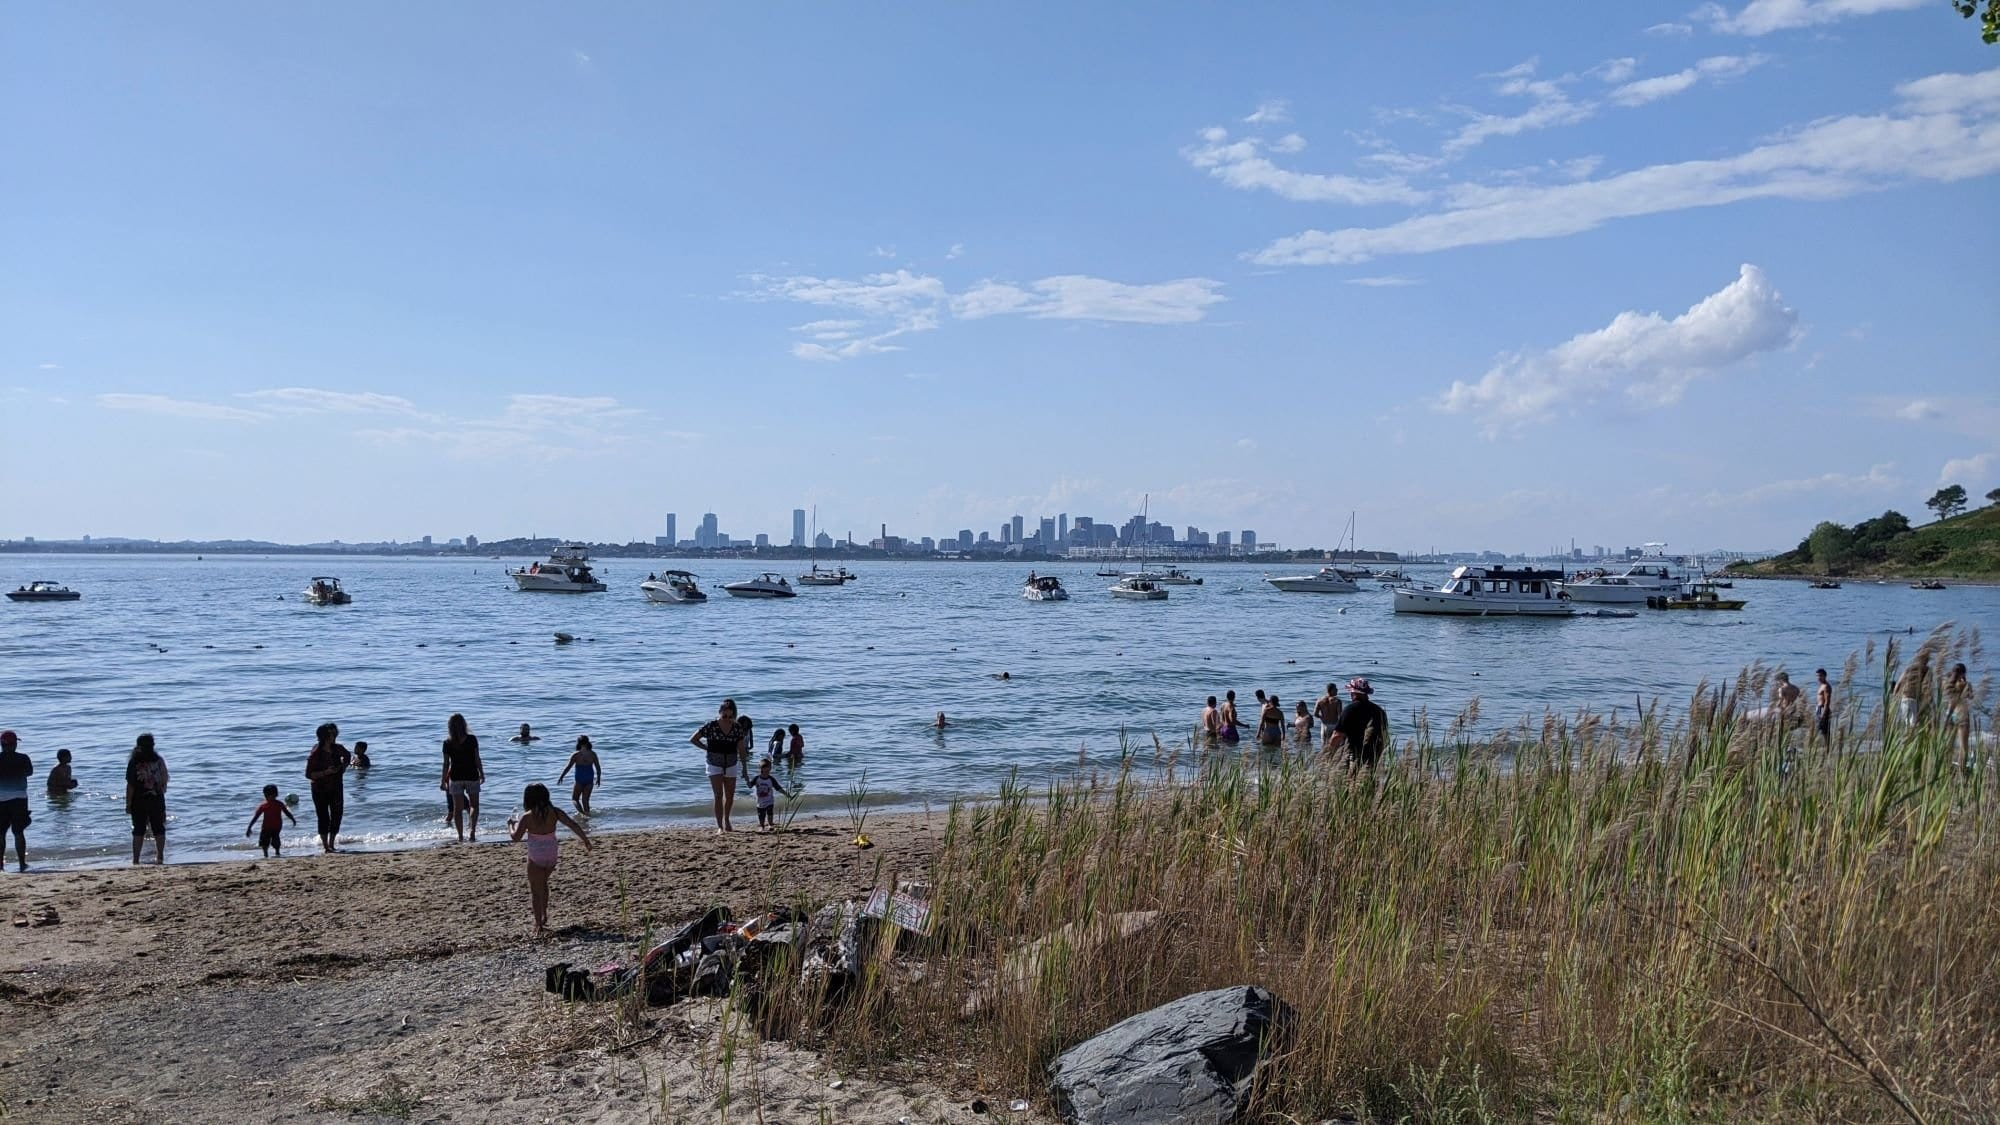 Spectacle Island beach with boats and the Boston skyline in the distance